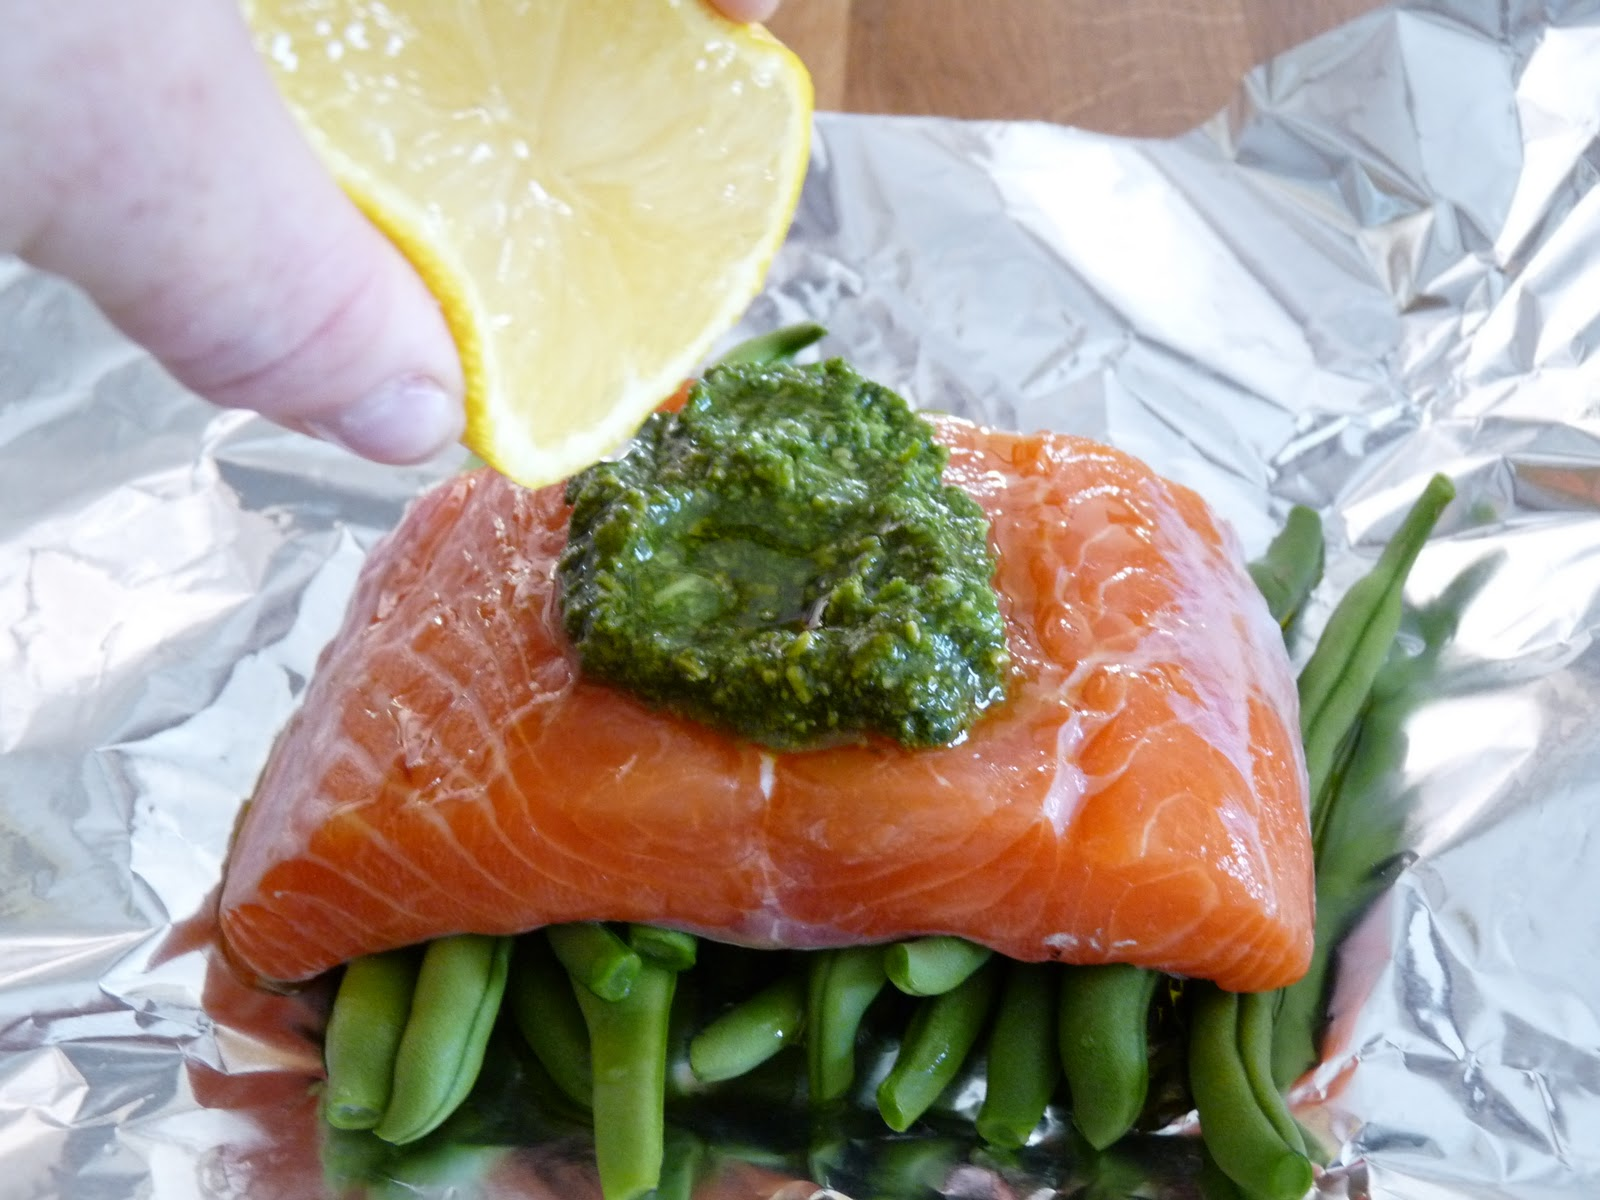 Jamie's Salmon Baked In A Foil Parcel With Green Beans And Pesto